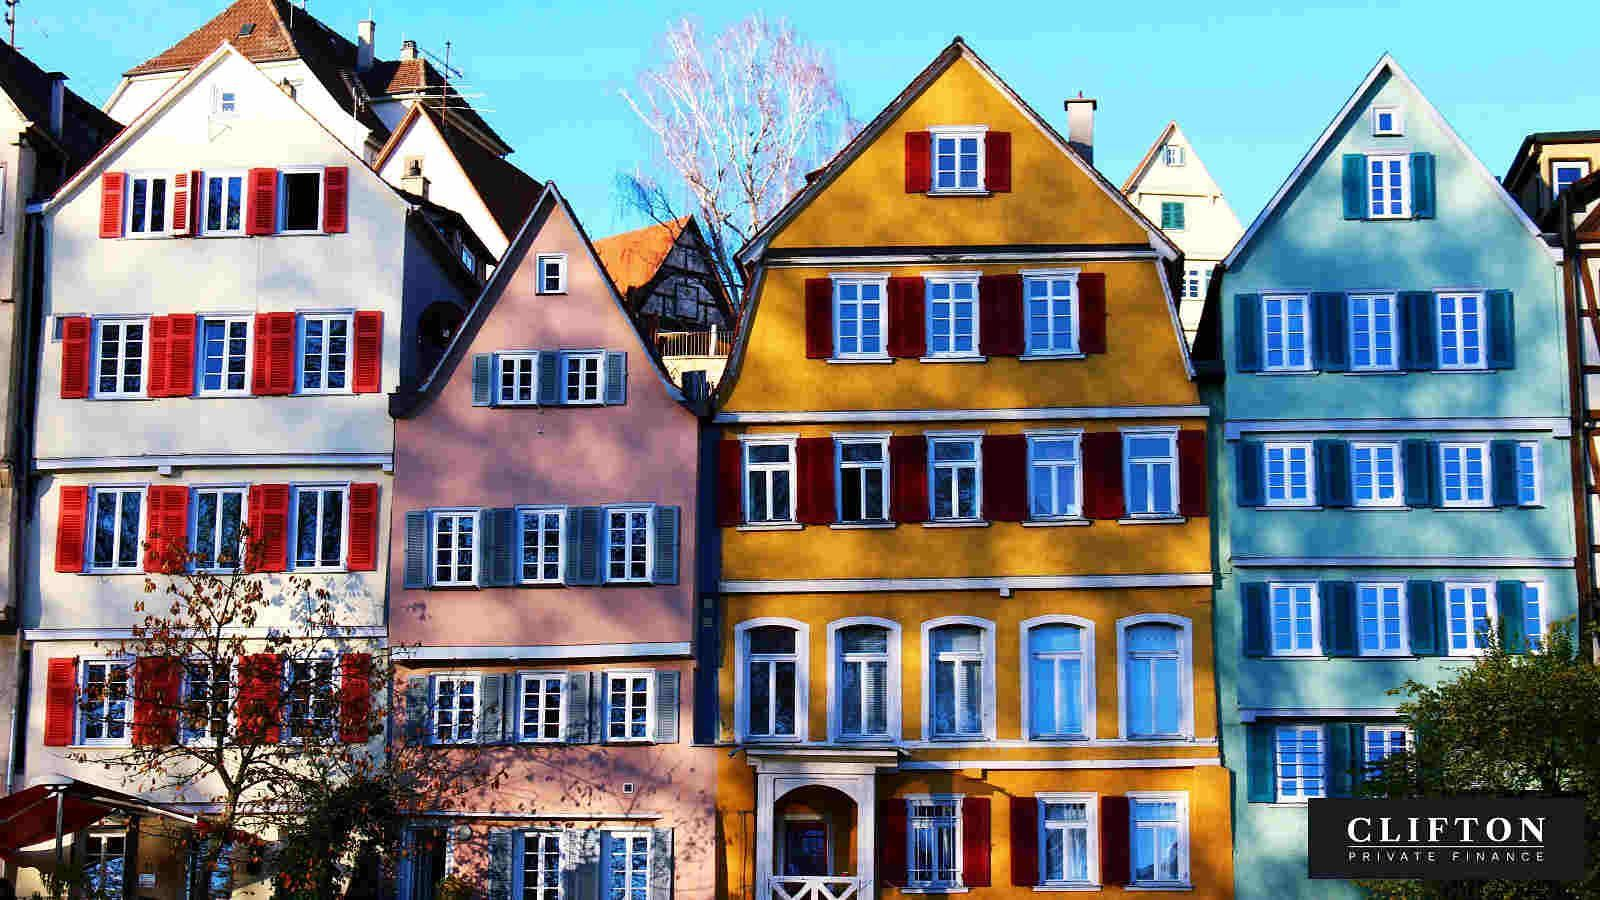 How To Get A UK Mortgage For British Expats Living In Germany